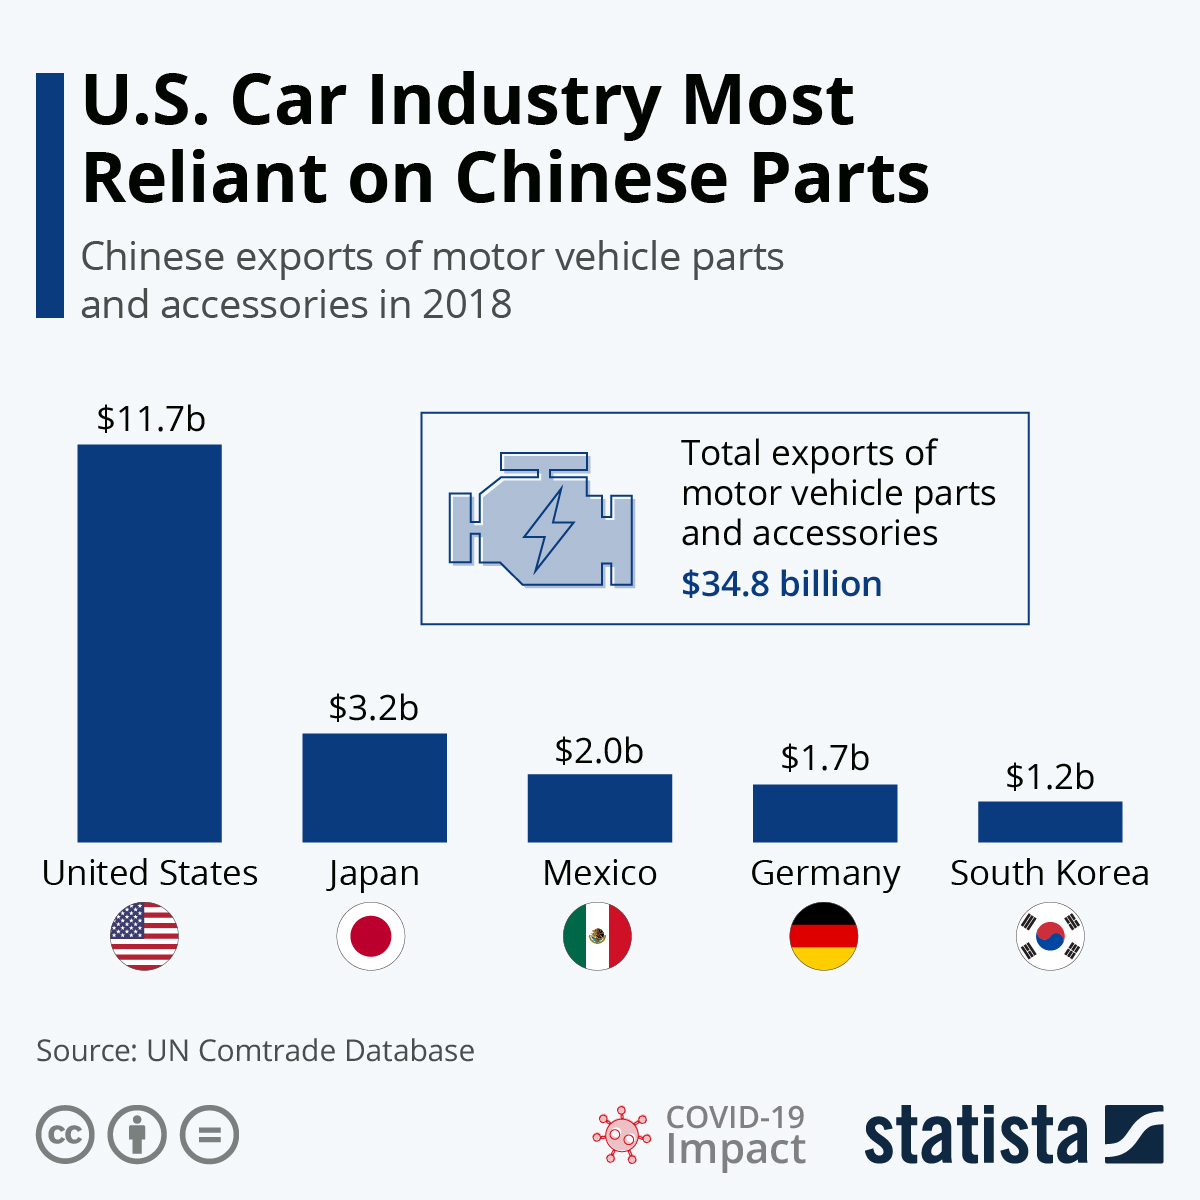 U.S. Car Industry Most Reliant On Chinese Parts